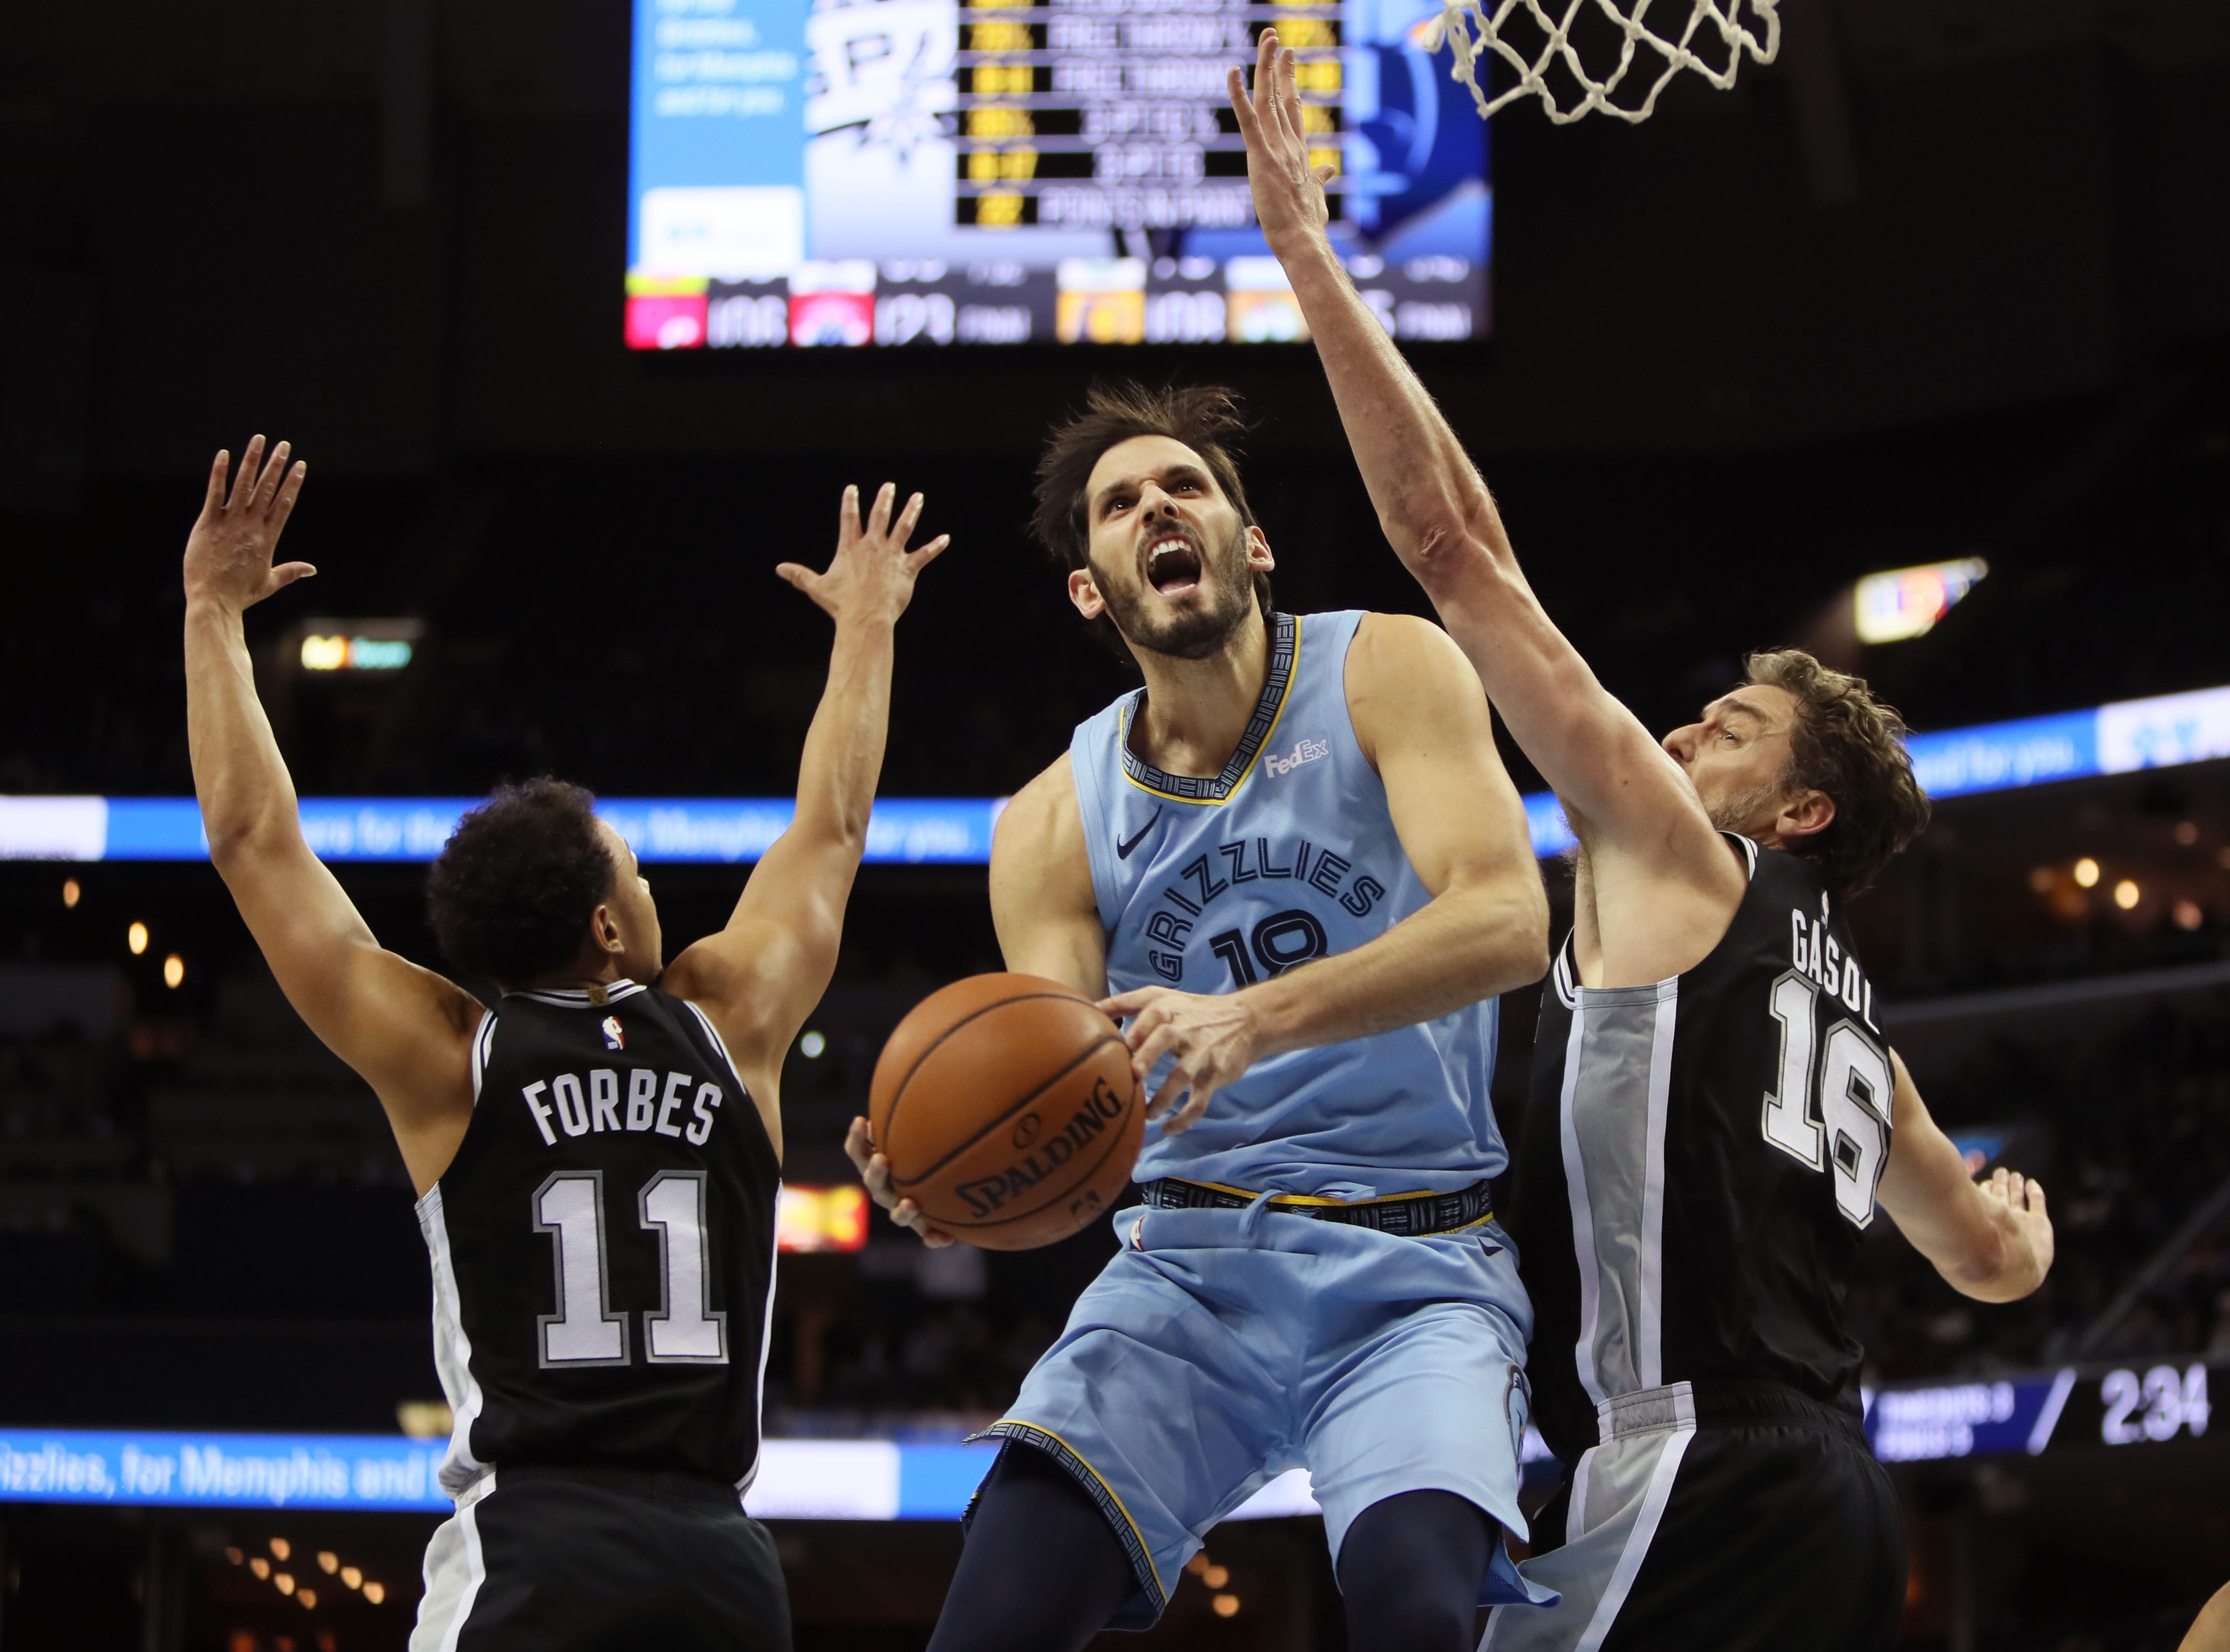 Memphis Grizzlies forward Omri Casspi makes a shot between San Antonio Spurs defenders Bryn Forbes, left, and Pau Gasol during their game at the FedExForum on Wednesday, Jan. 9, 2019.